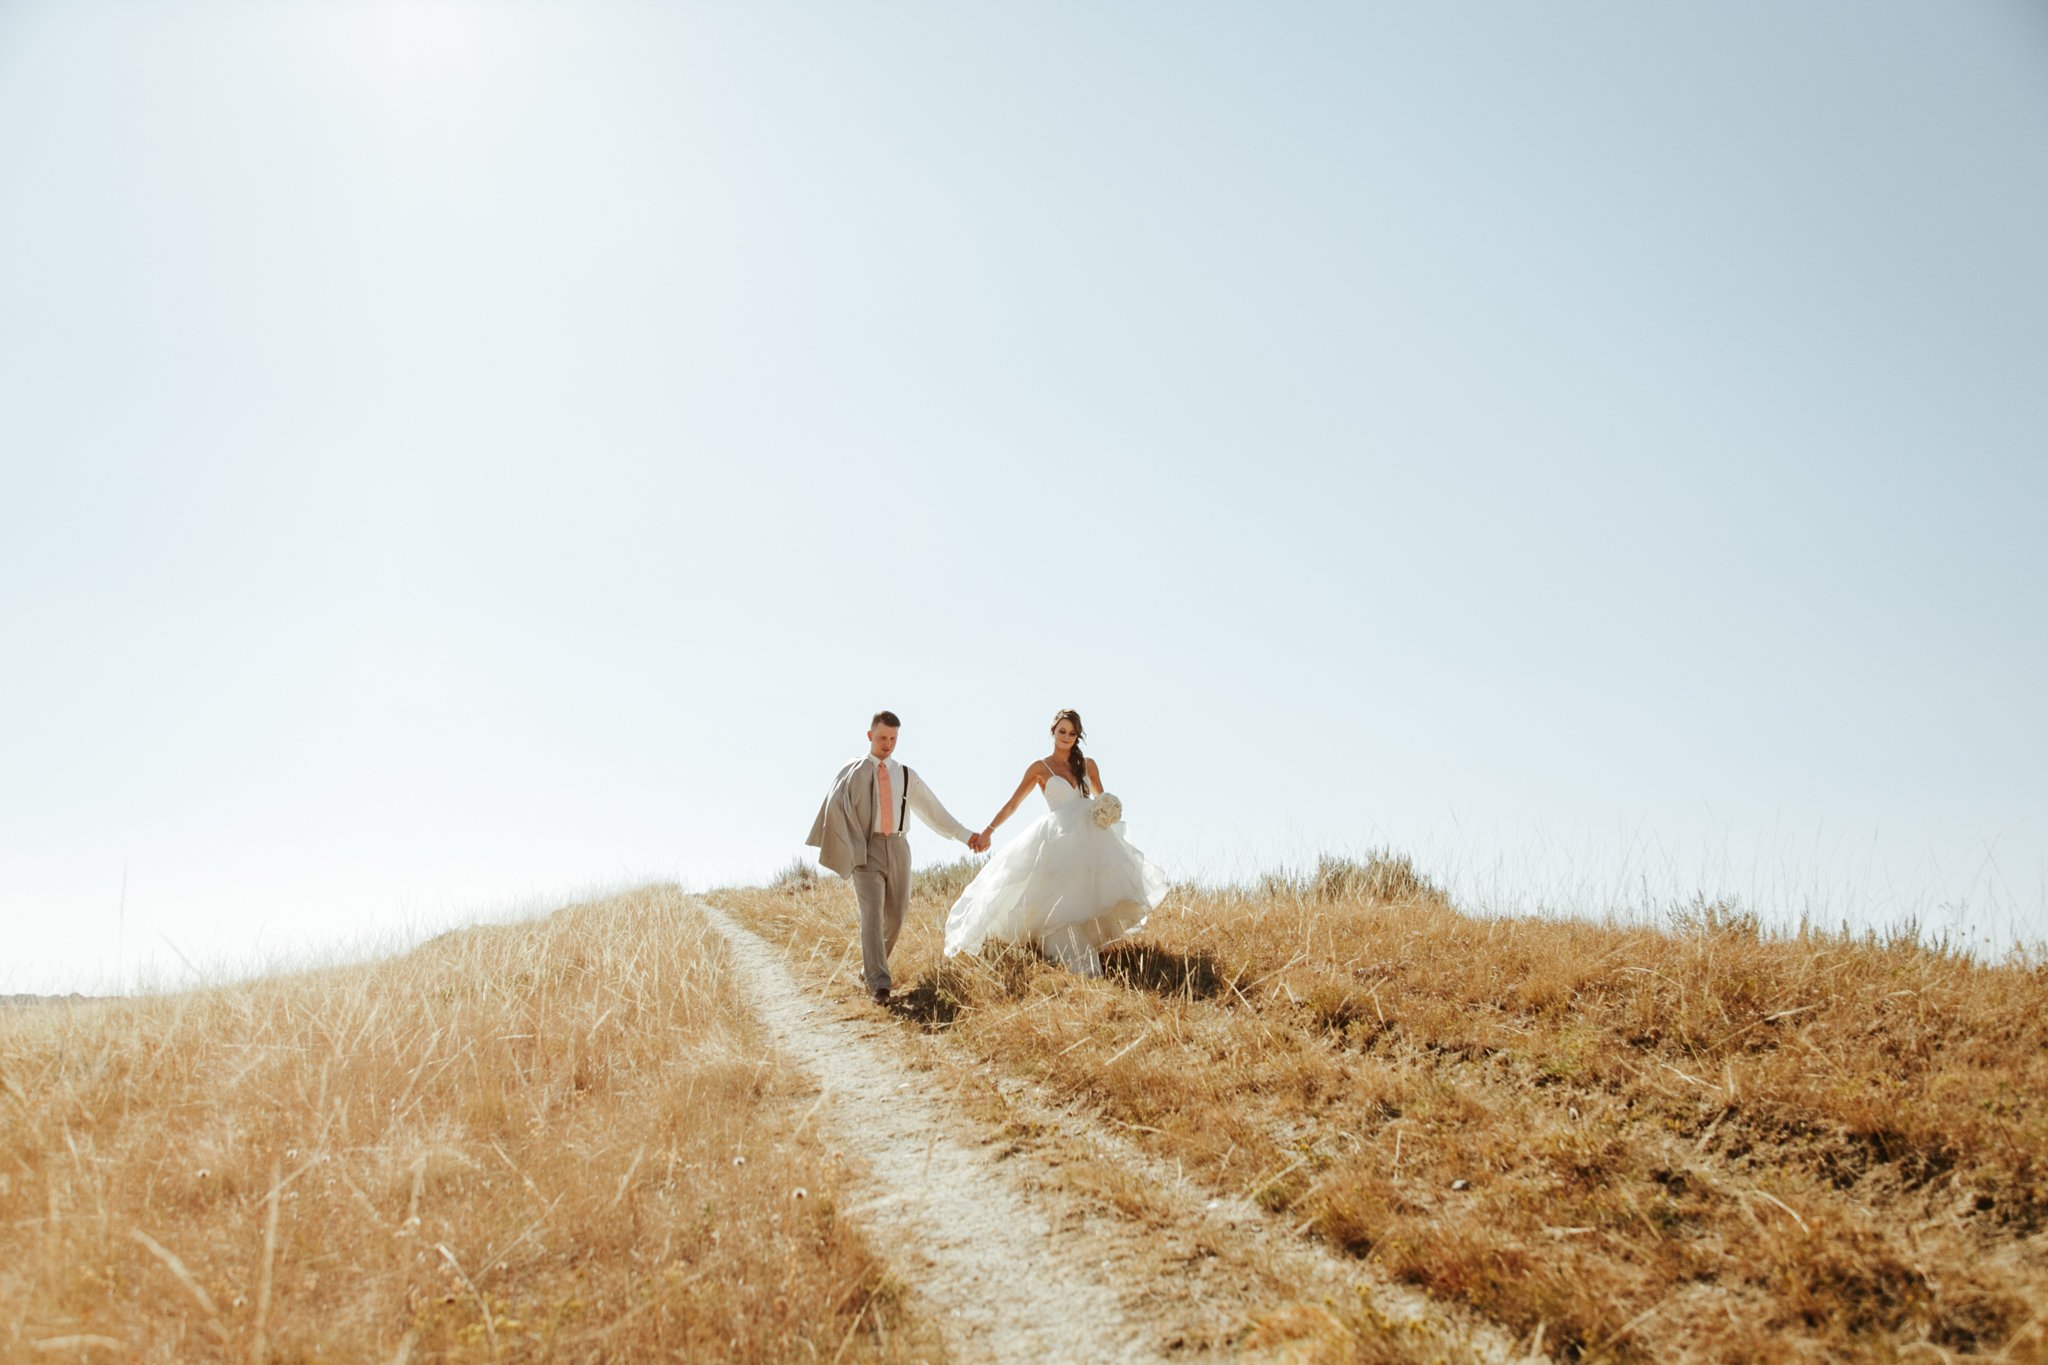 lethbridge-wedding-photography-love-and-be-loved-photographer-sean-sharla-henderson-lake-wedding-image-picture-photo-118.jpg